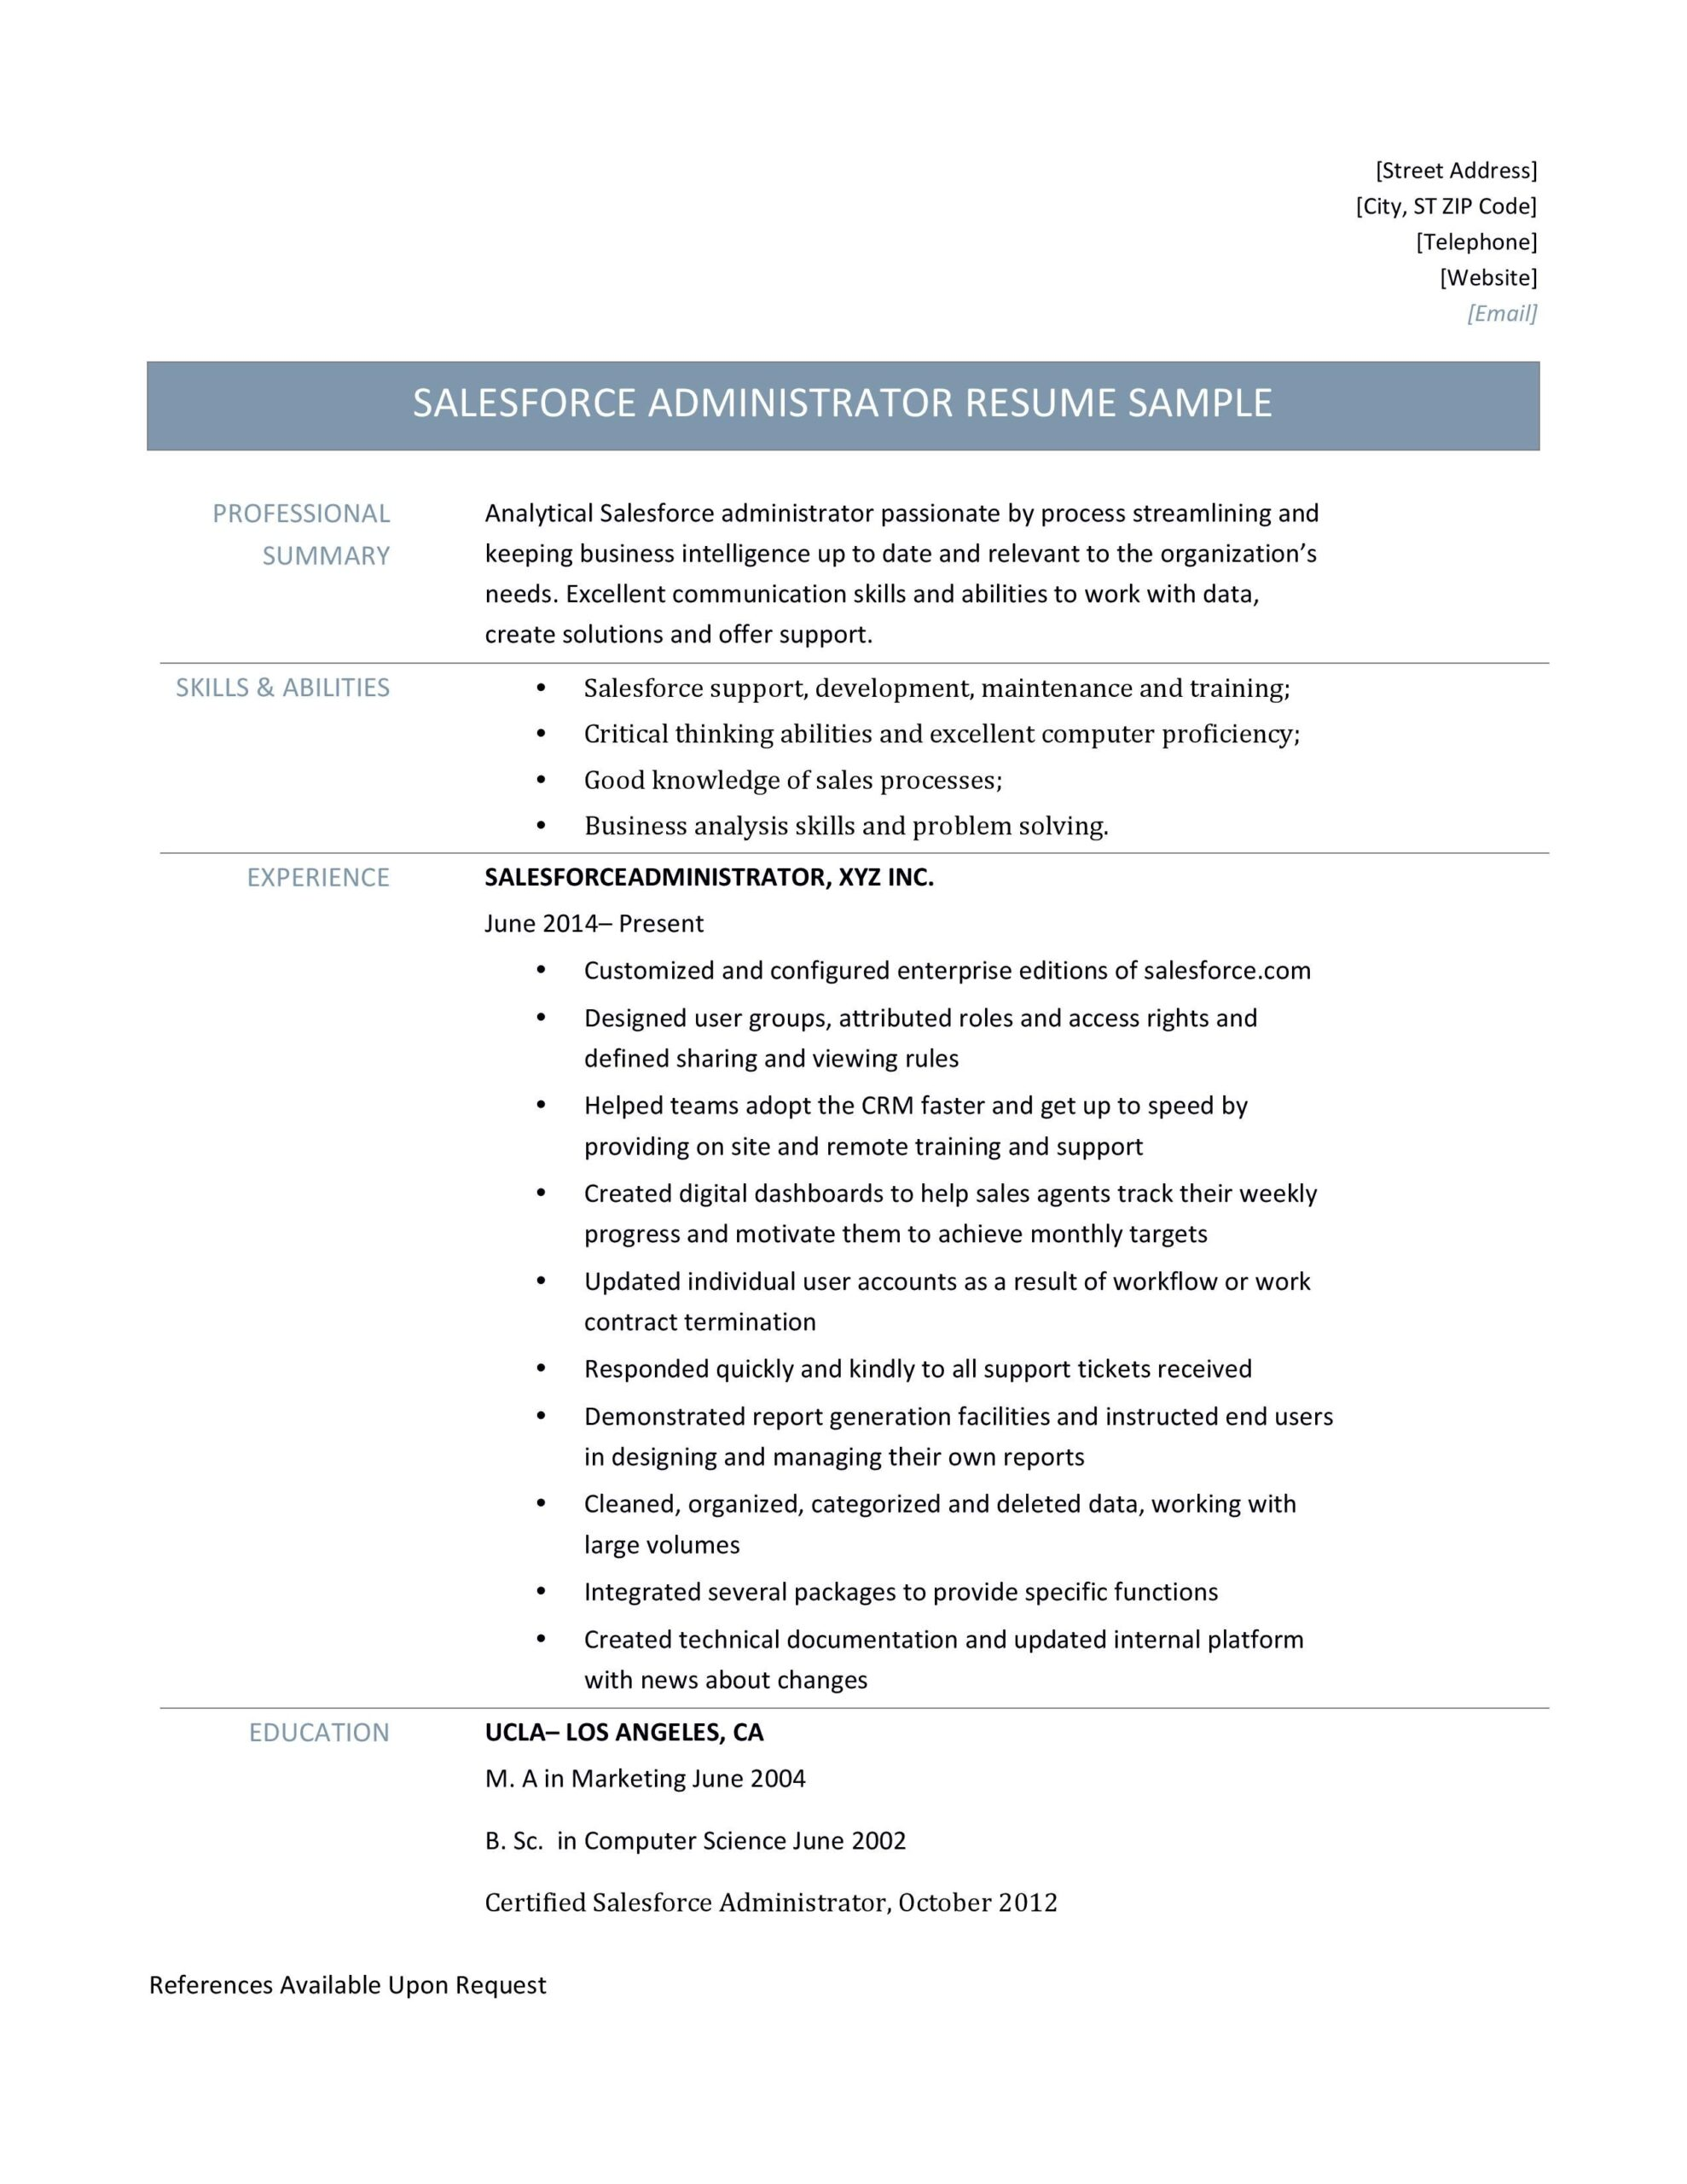 force administrator resume template salesforce administration experience format home Resume Salesforce Experience Resume Format